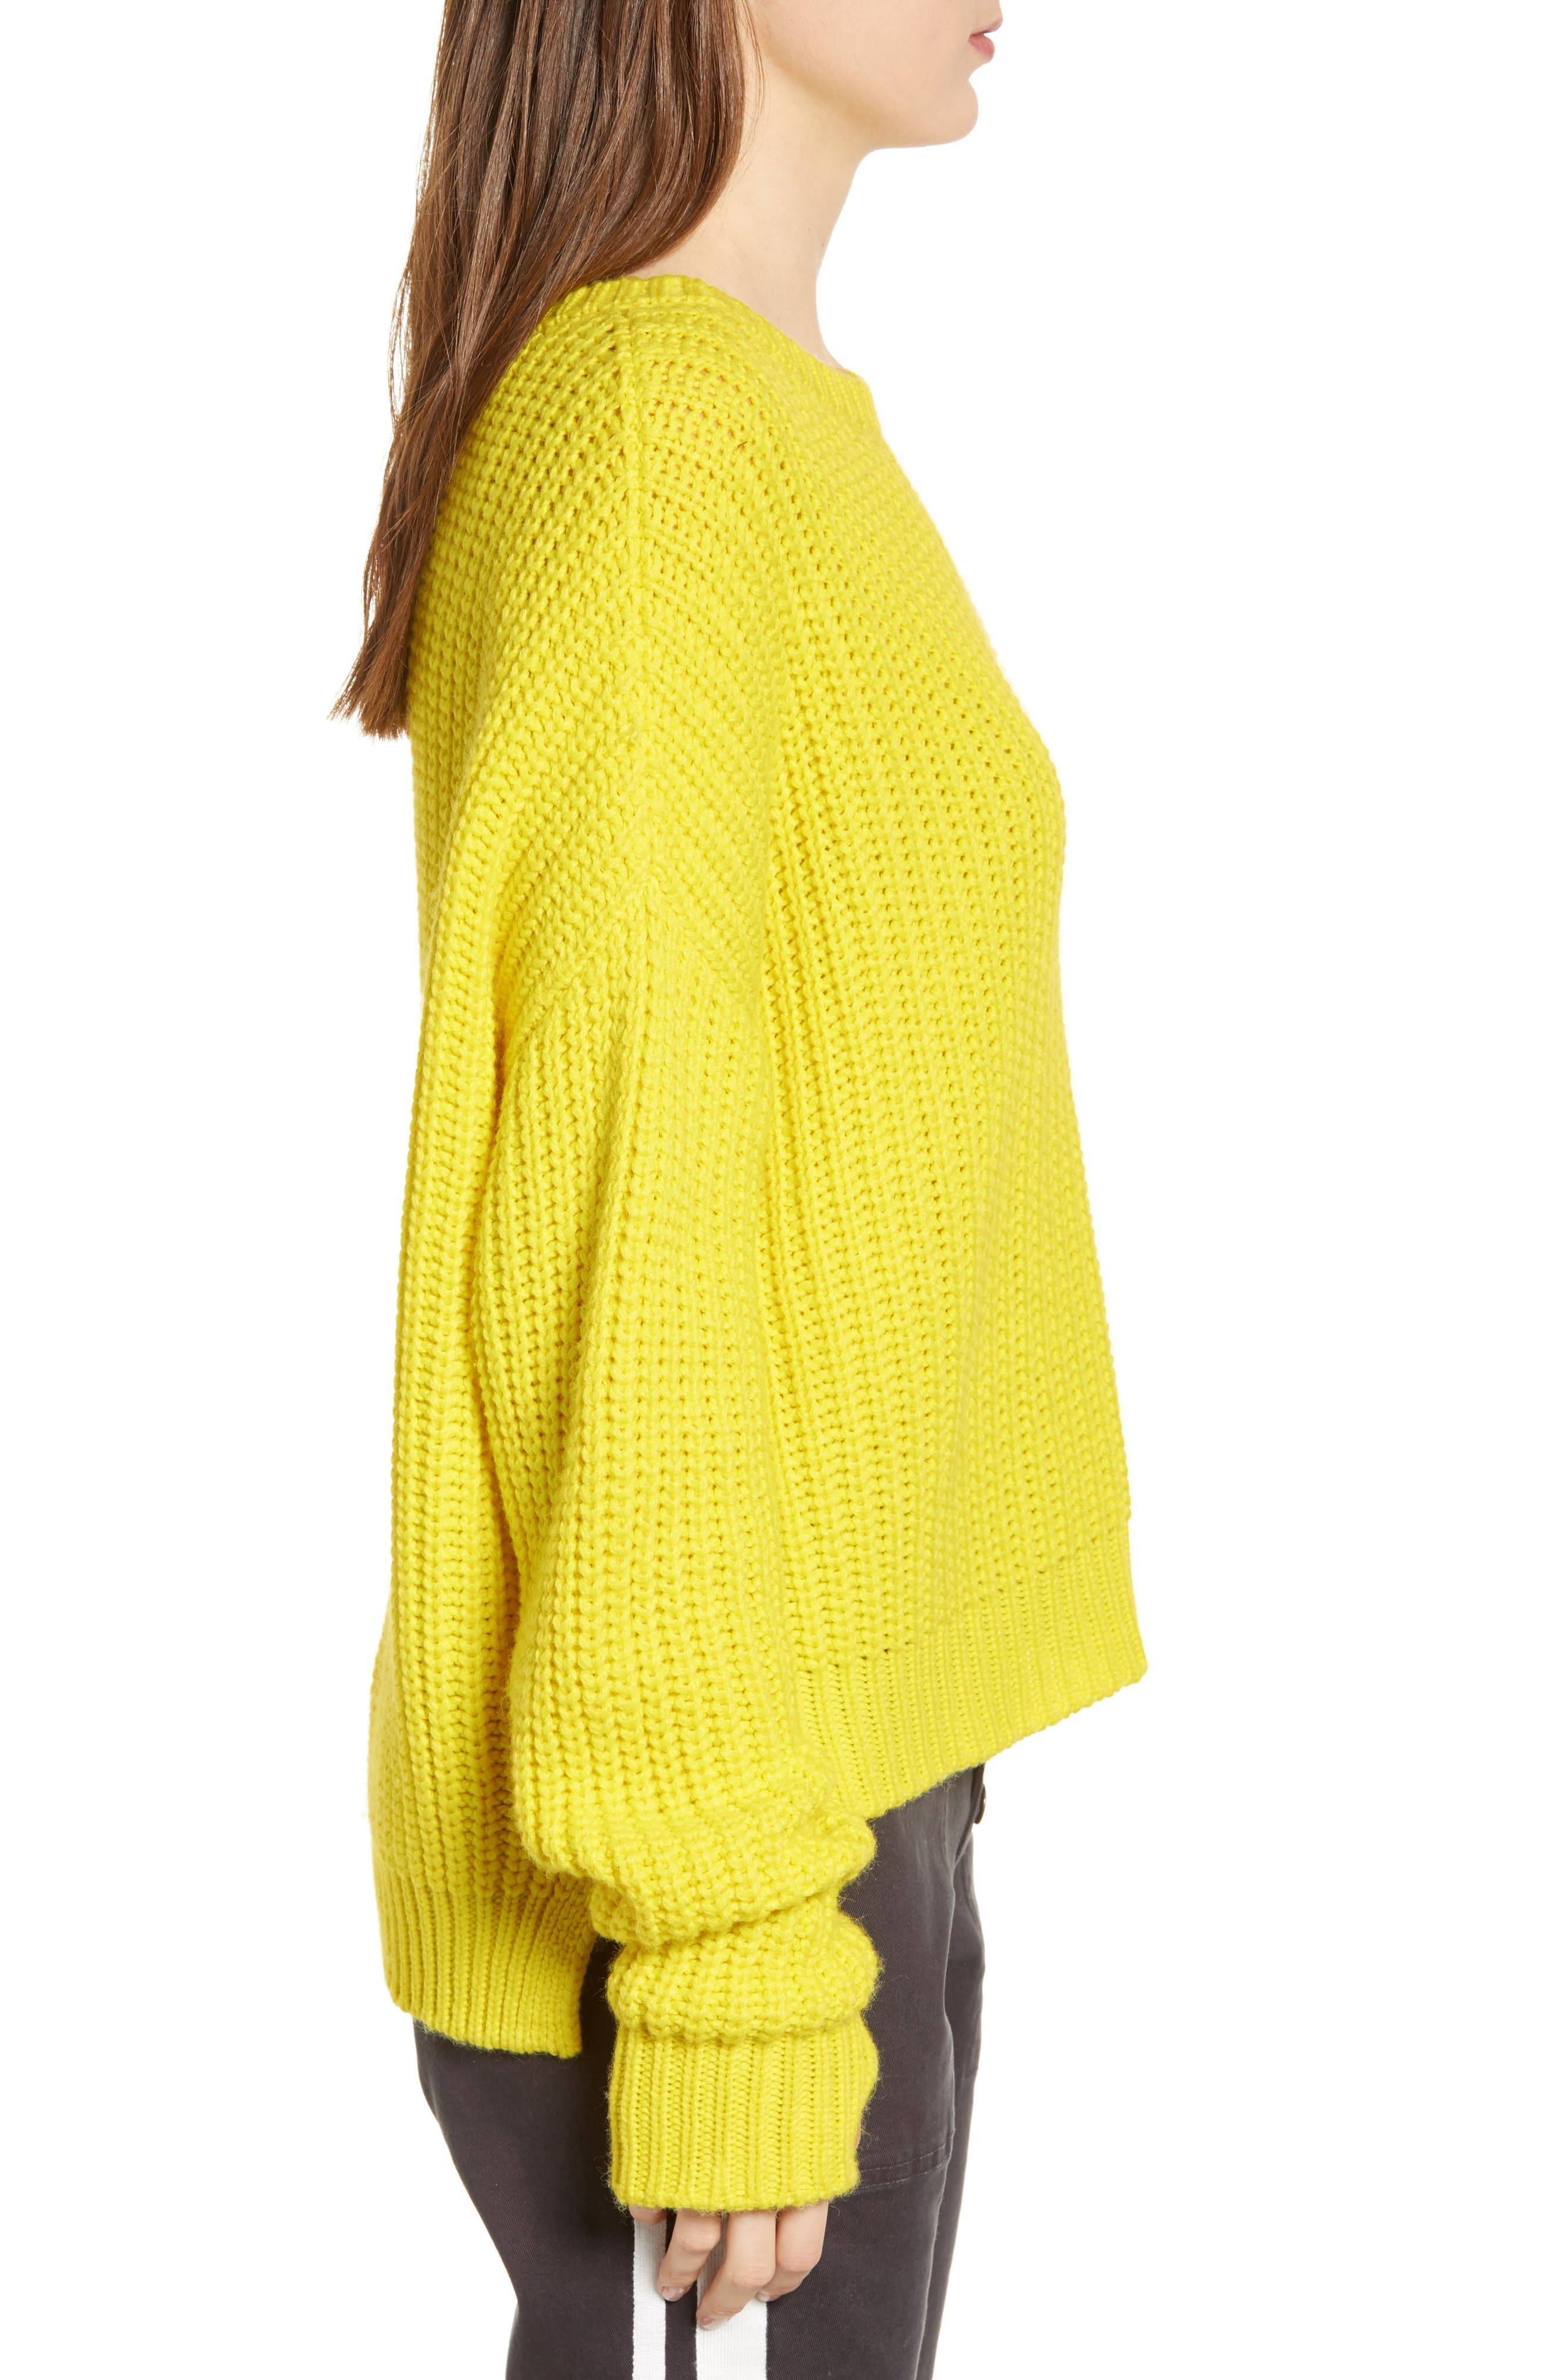 PAM & GELA, High/Low Sweater, Alternate thumbnail 3, color, 729